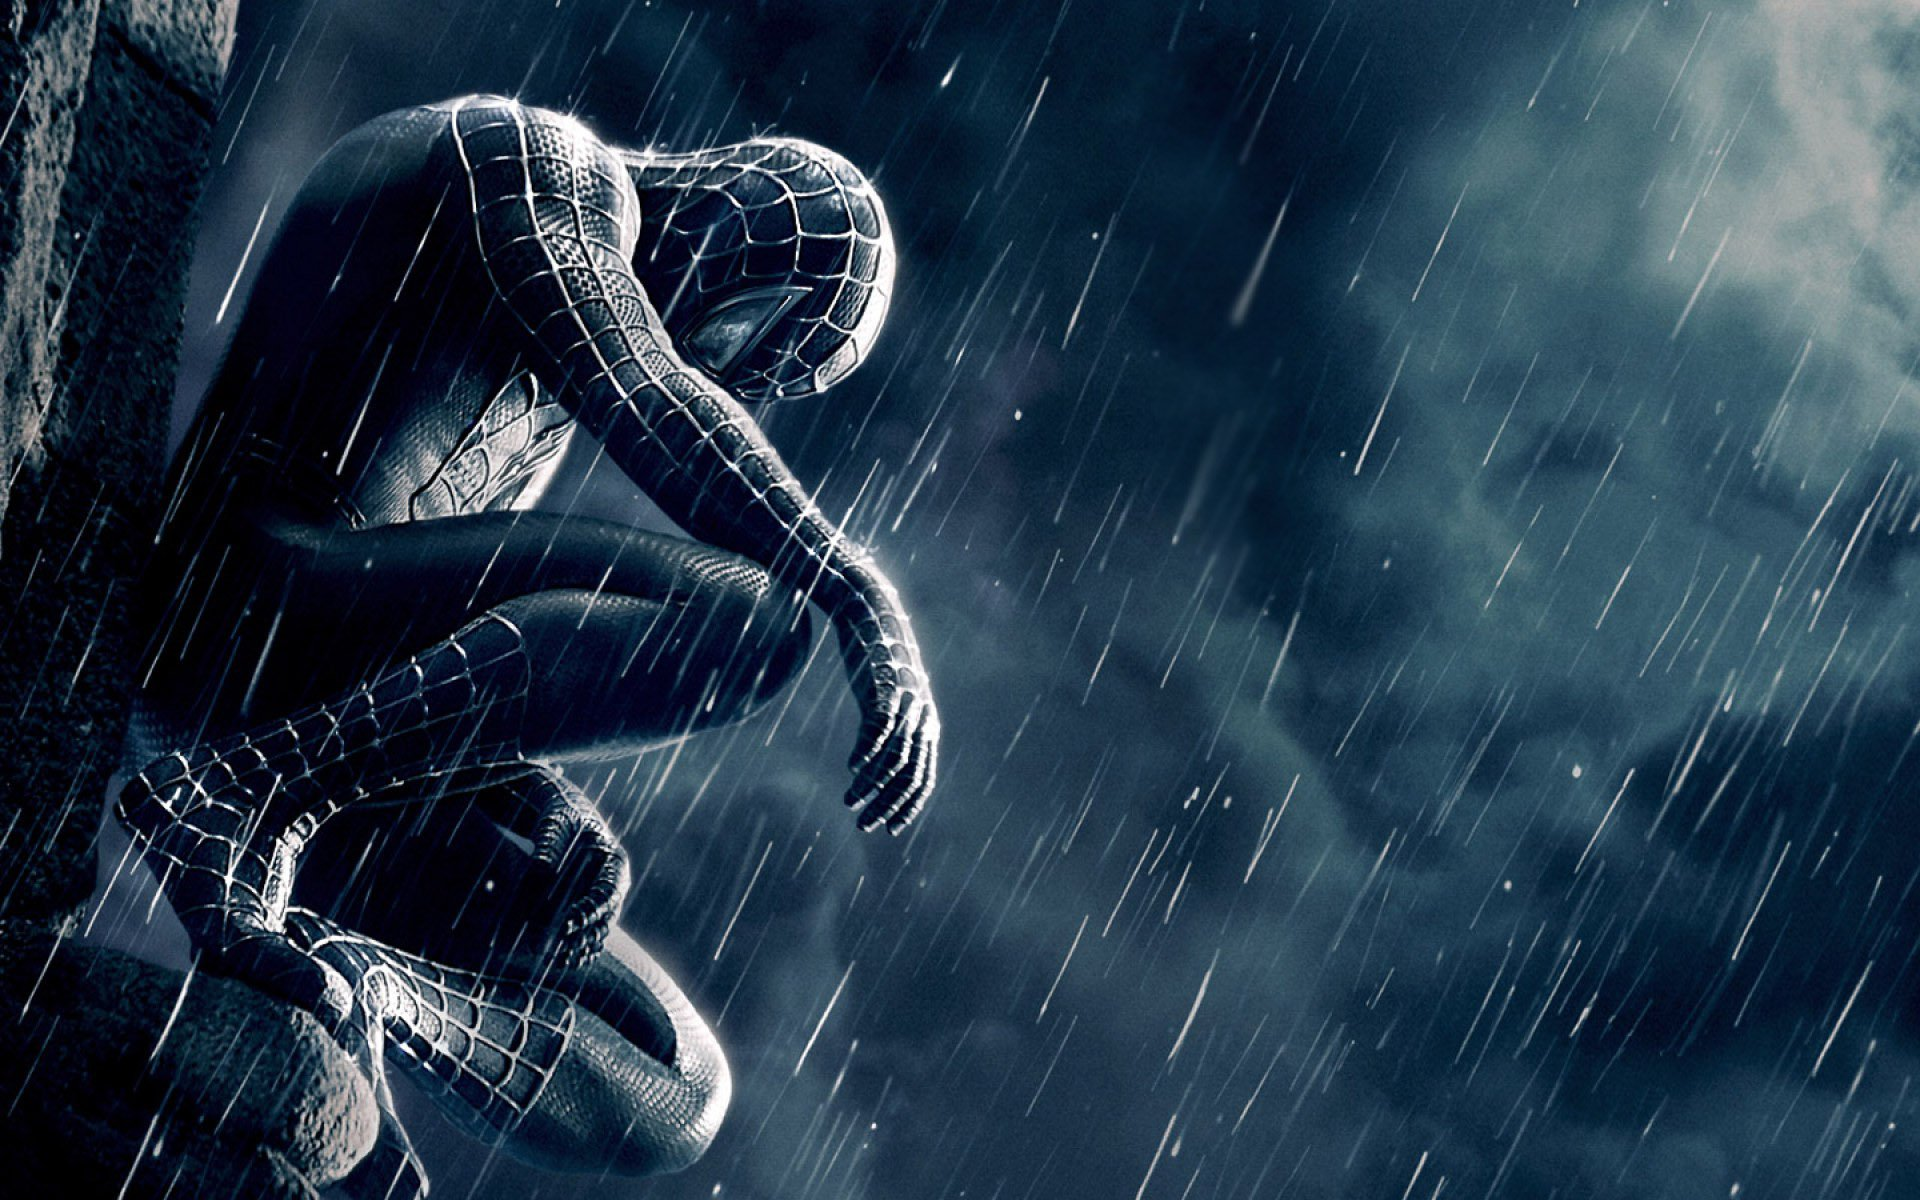 Spiderman 3 Hd Wallpapers 1080p: Spiderman HD Wallpaper